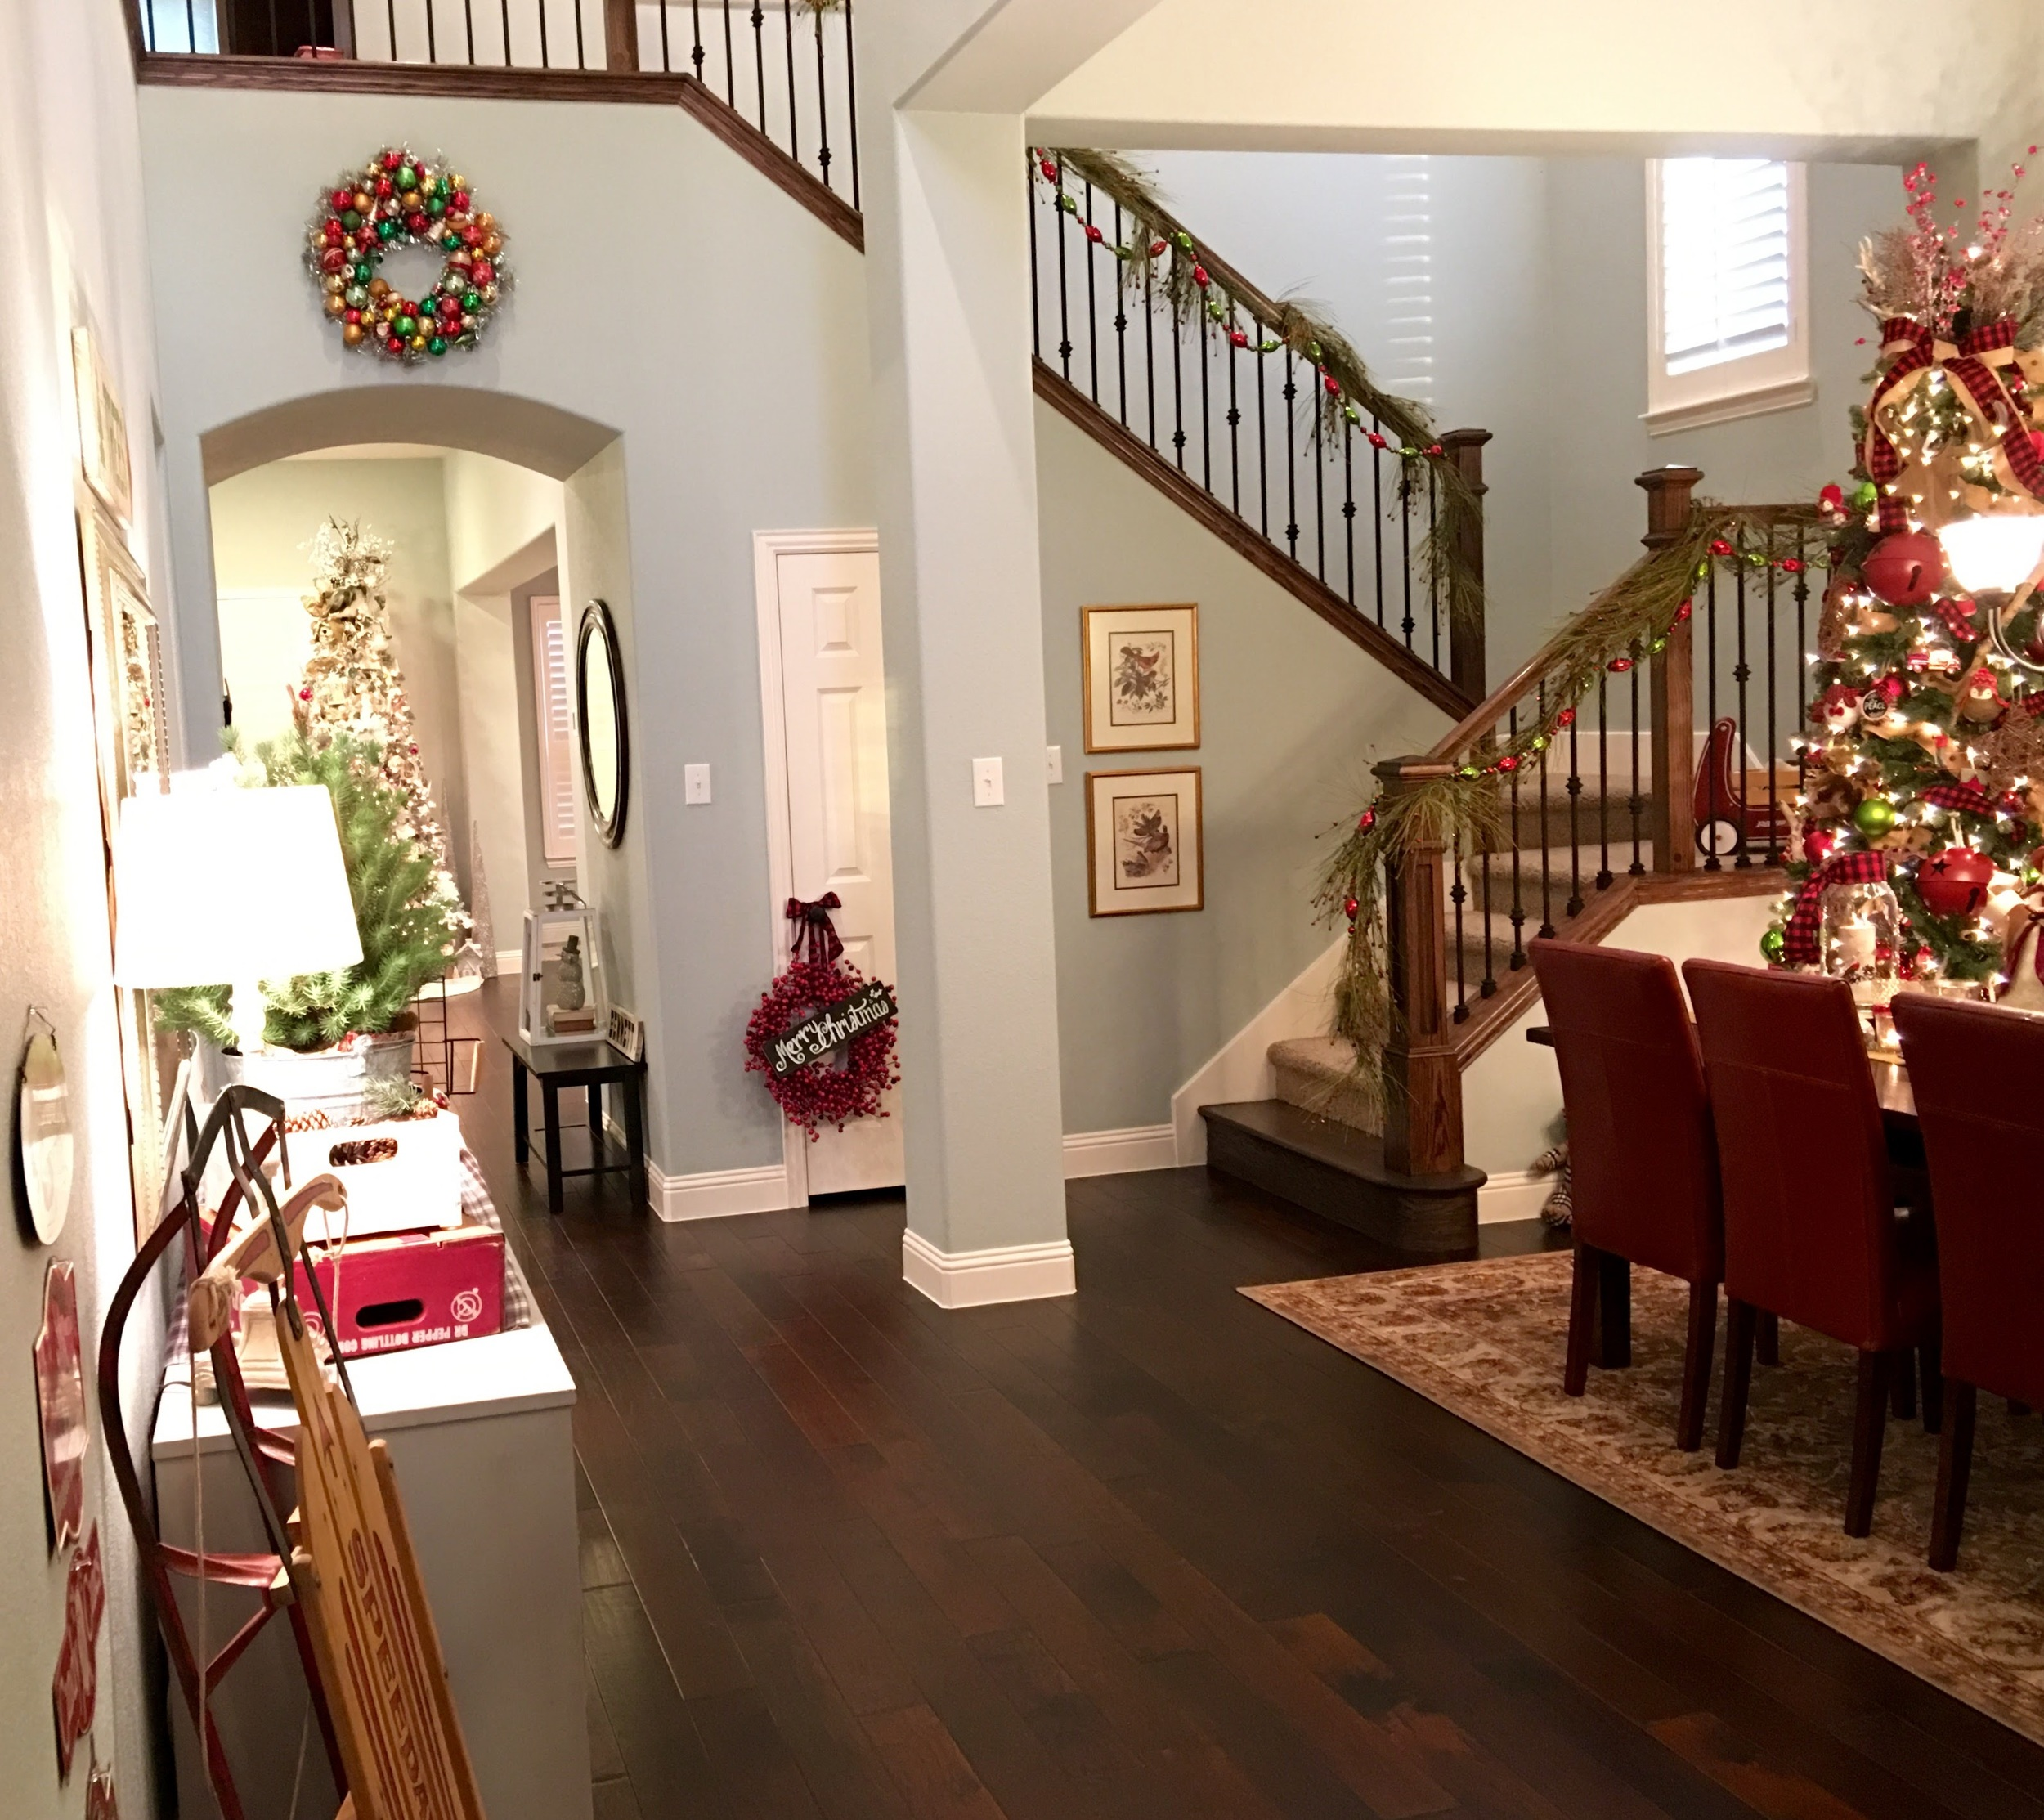 Your view walking in the front door!  Our office is to the right (not visible in this pic), across for the entryway.  Then you move into the formal Dining Room (pictured right) and the buffet on the opposite wall